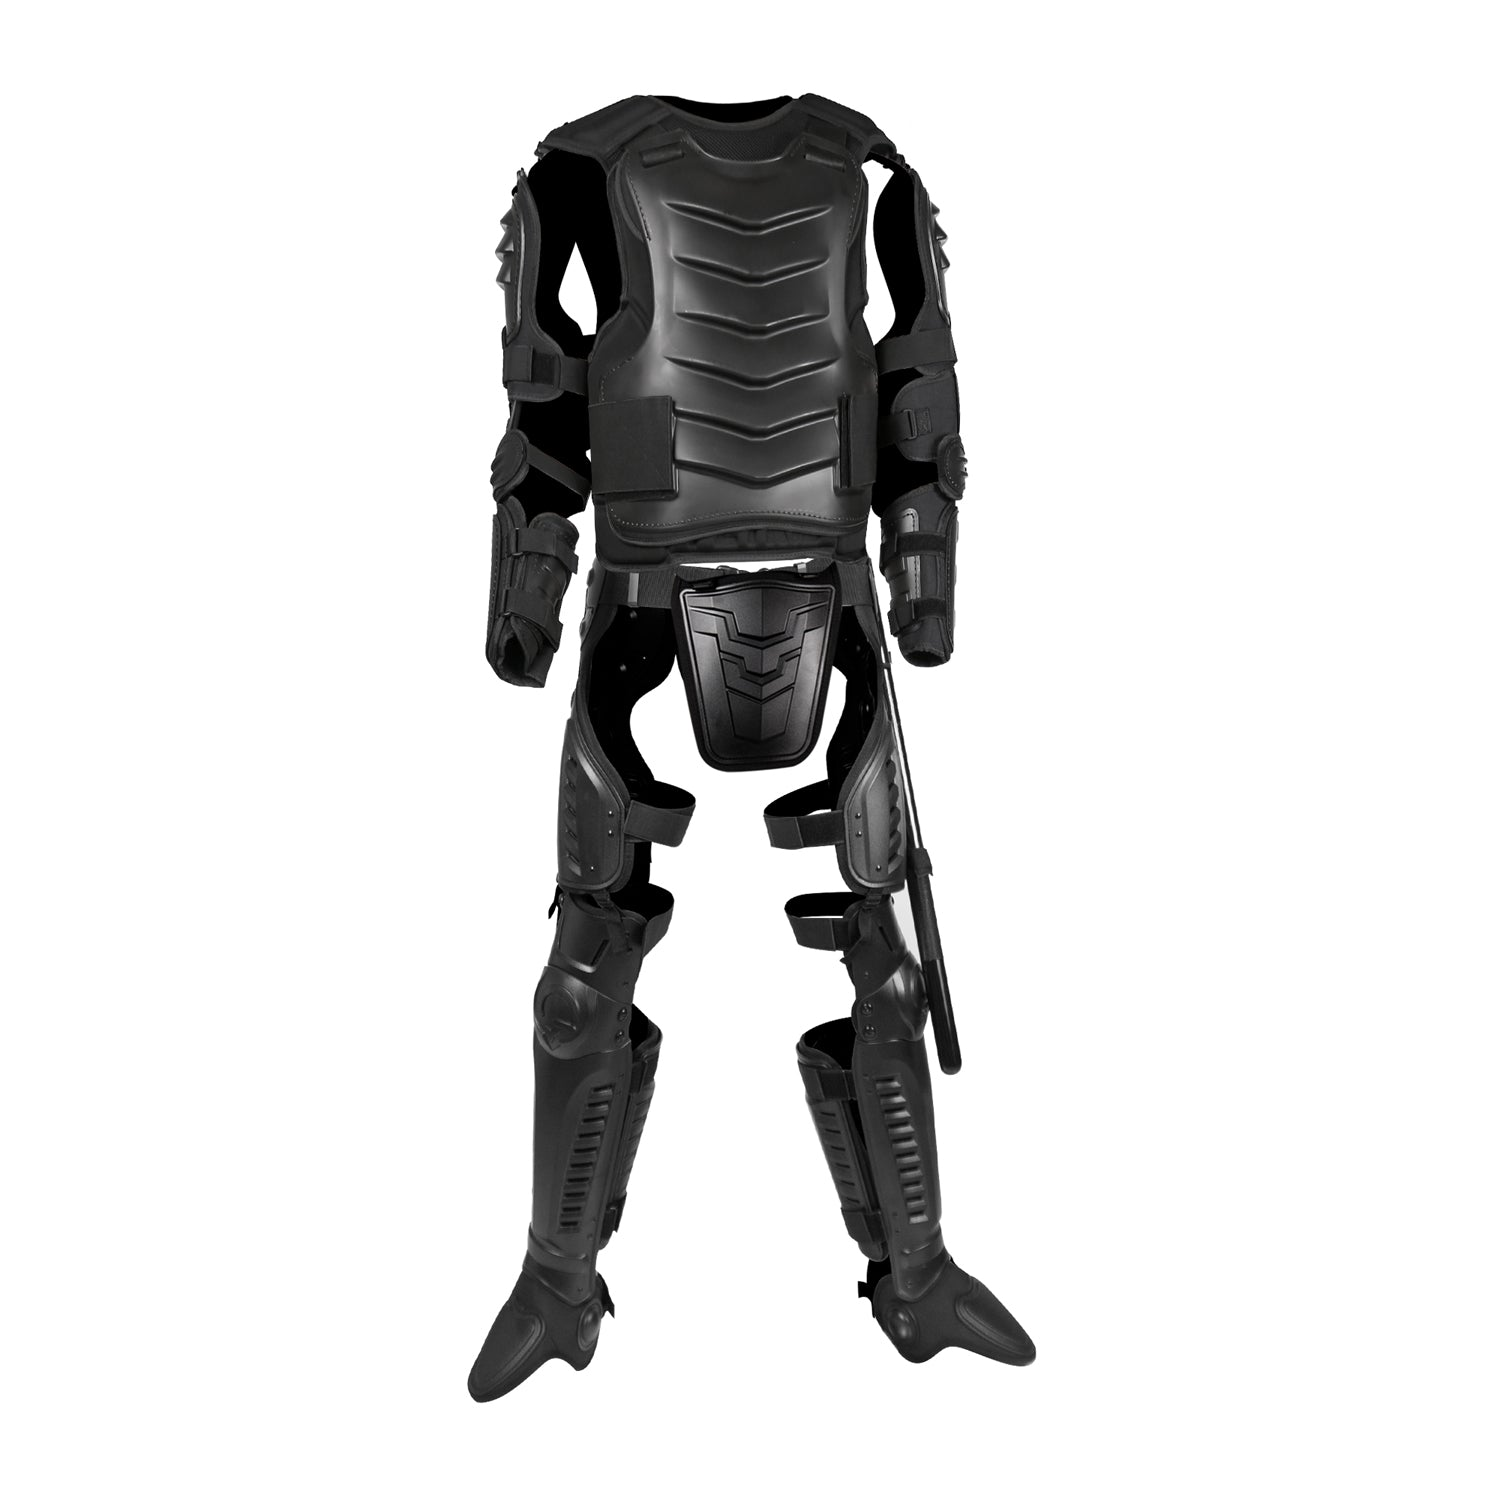 SecPro Riot Gear Suit Complete